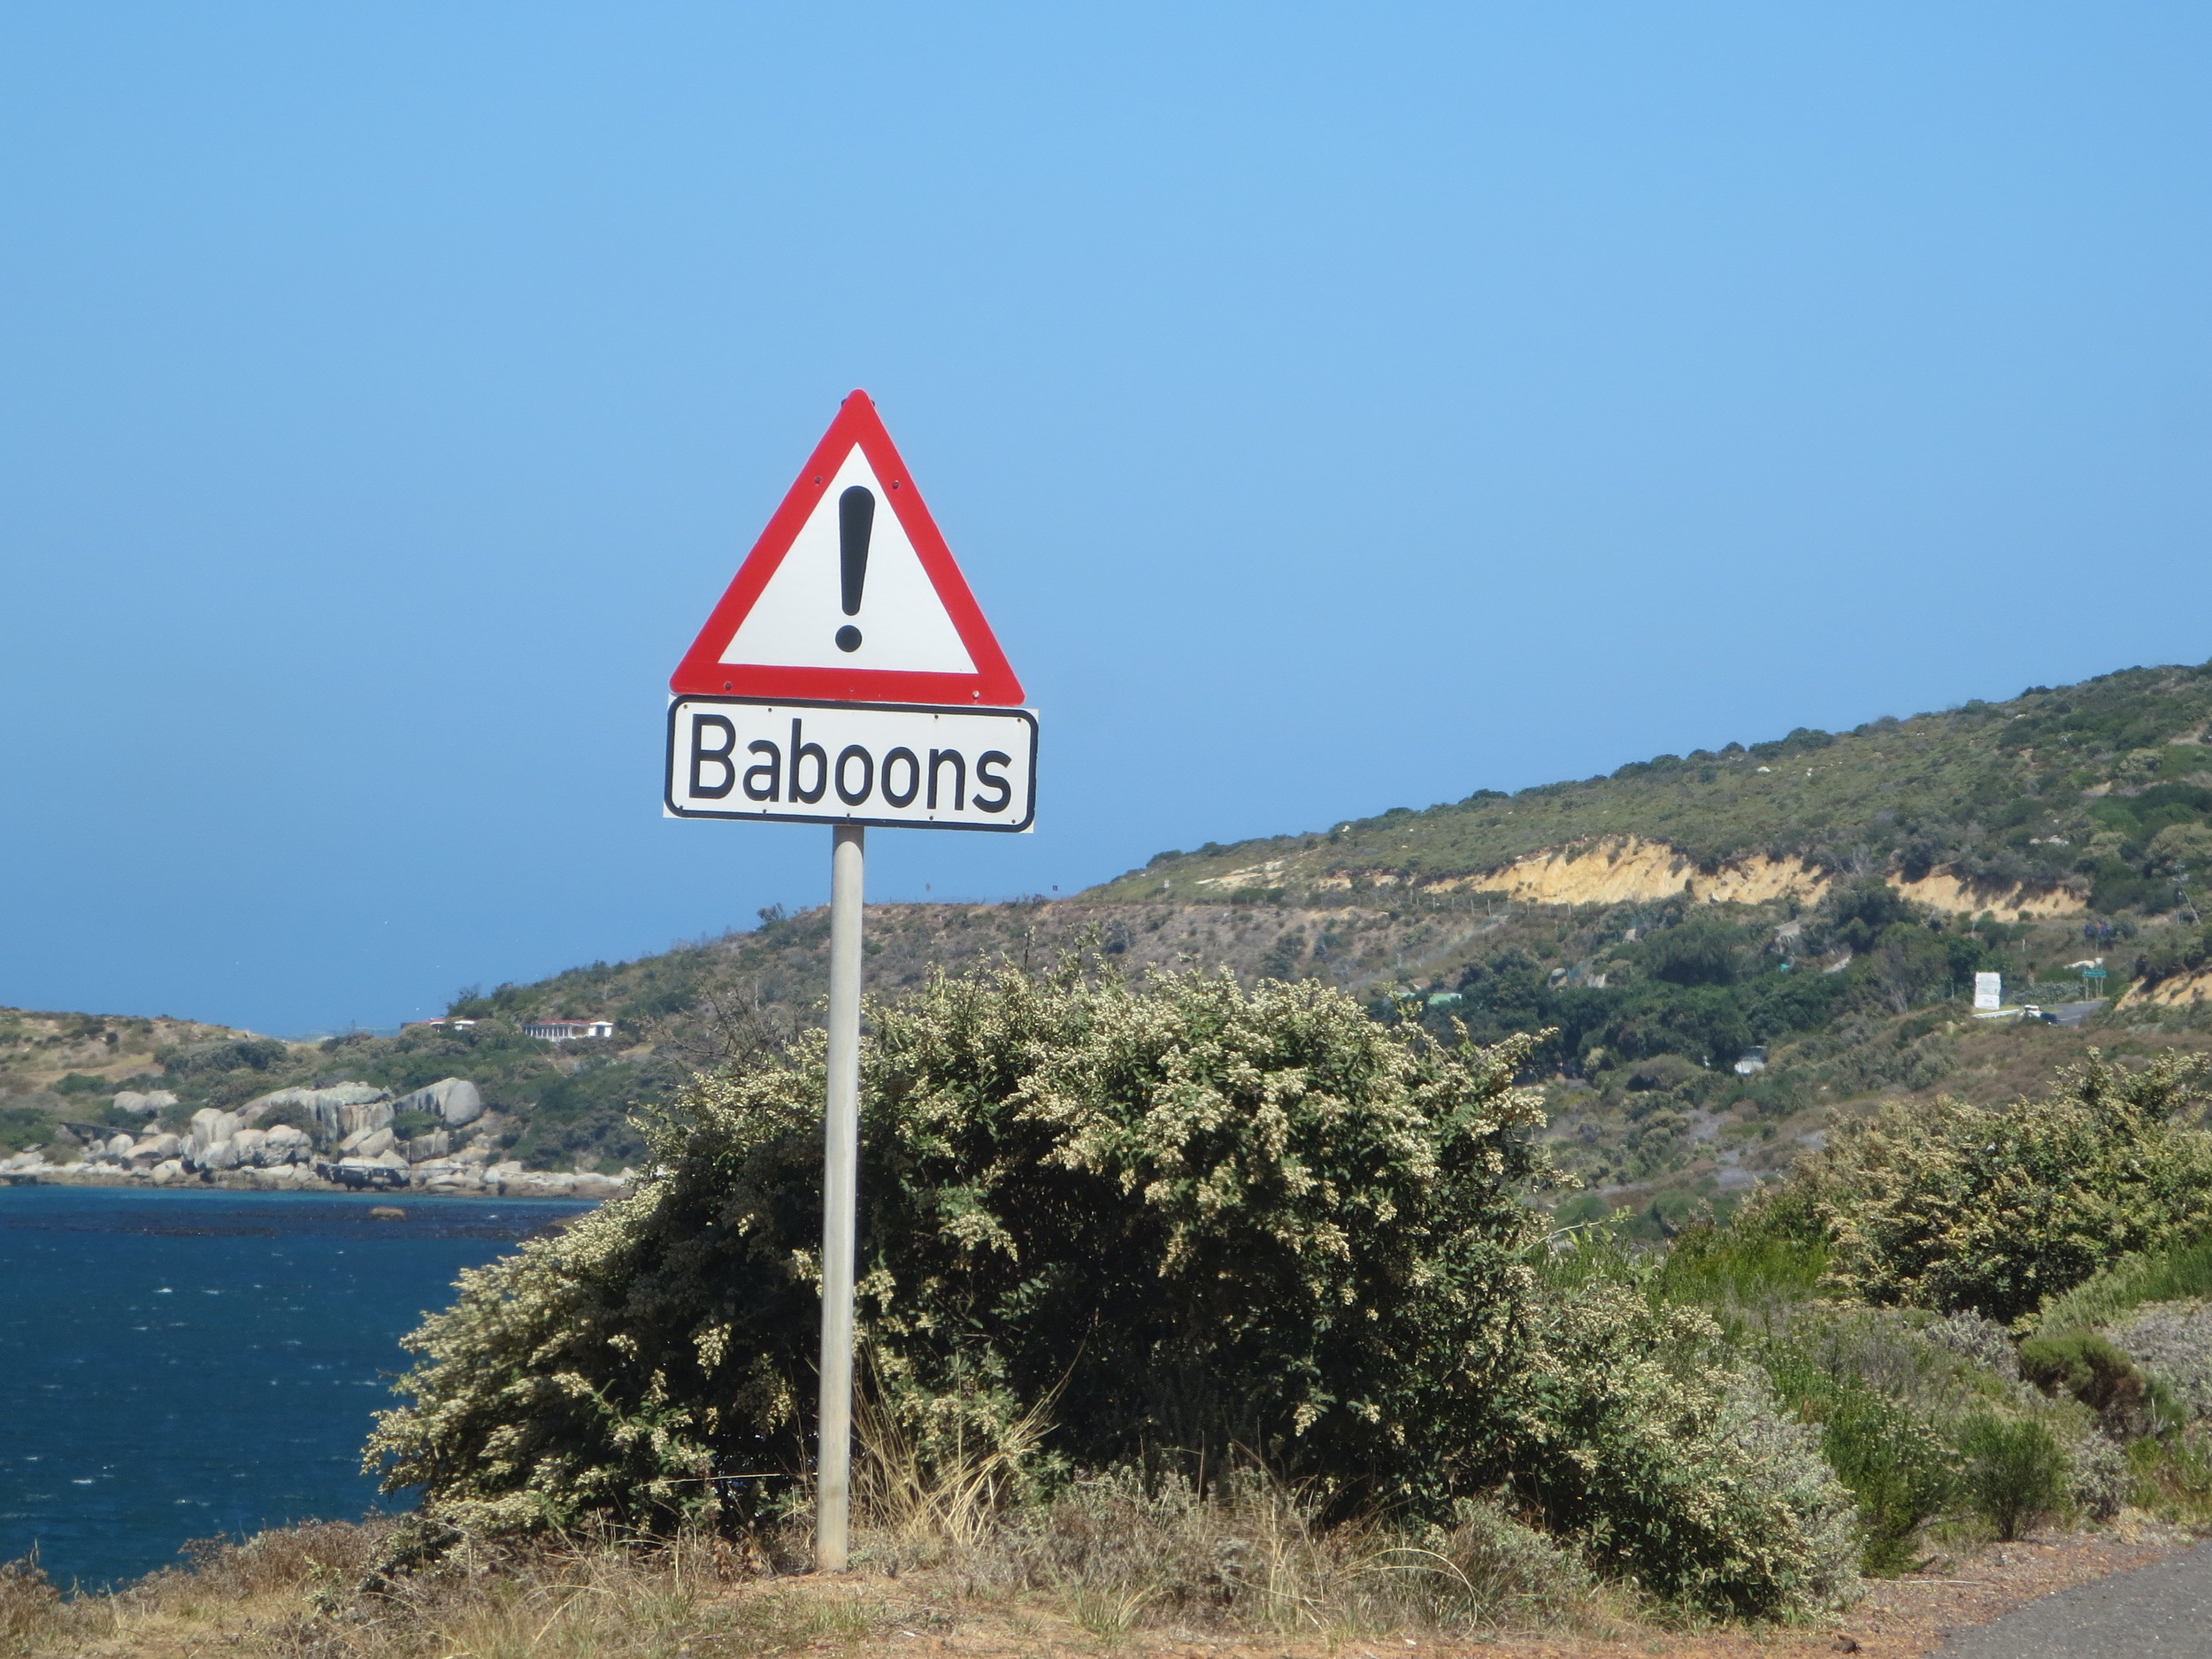 Better to be aware!  This is a road sign you will not see in many places